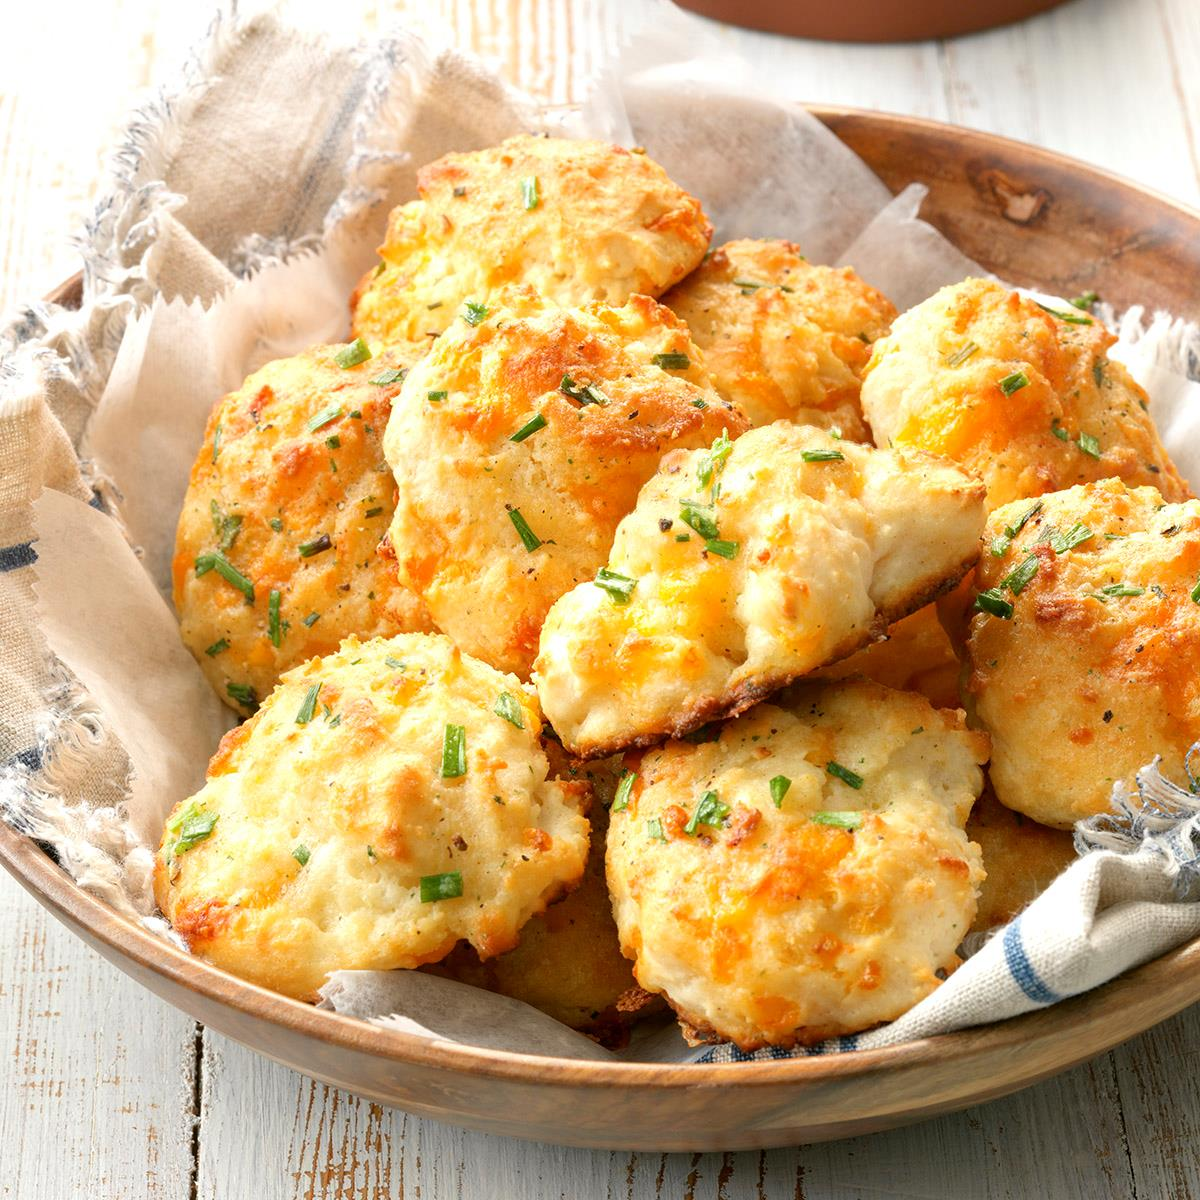 Cheese & Garlic Biscuits image